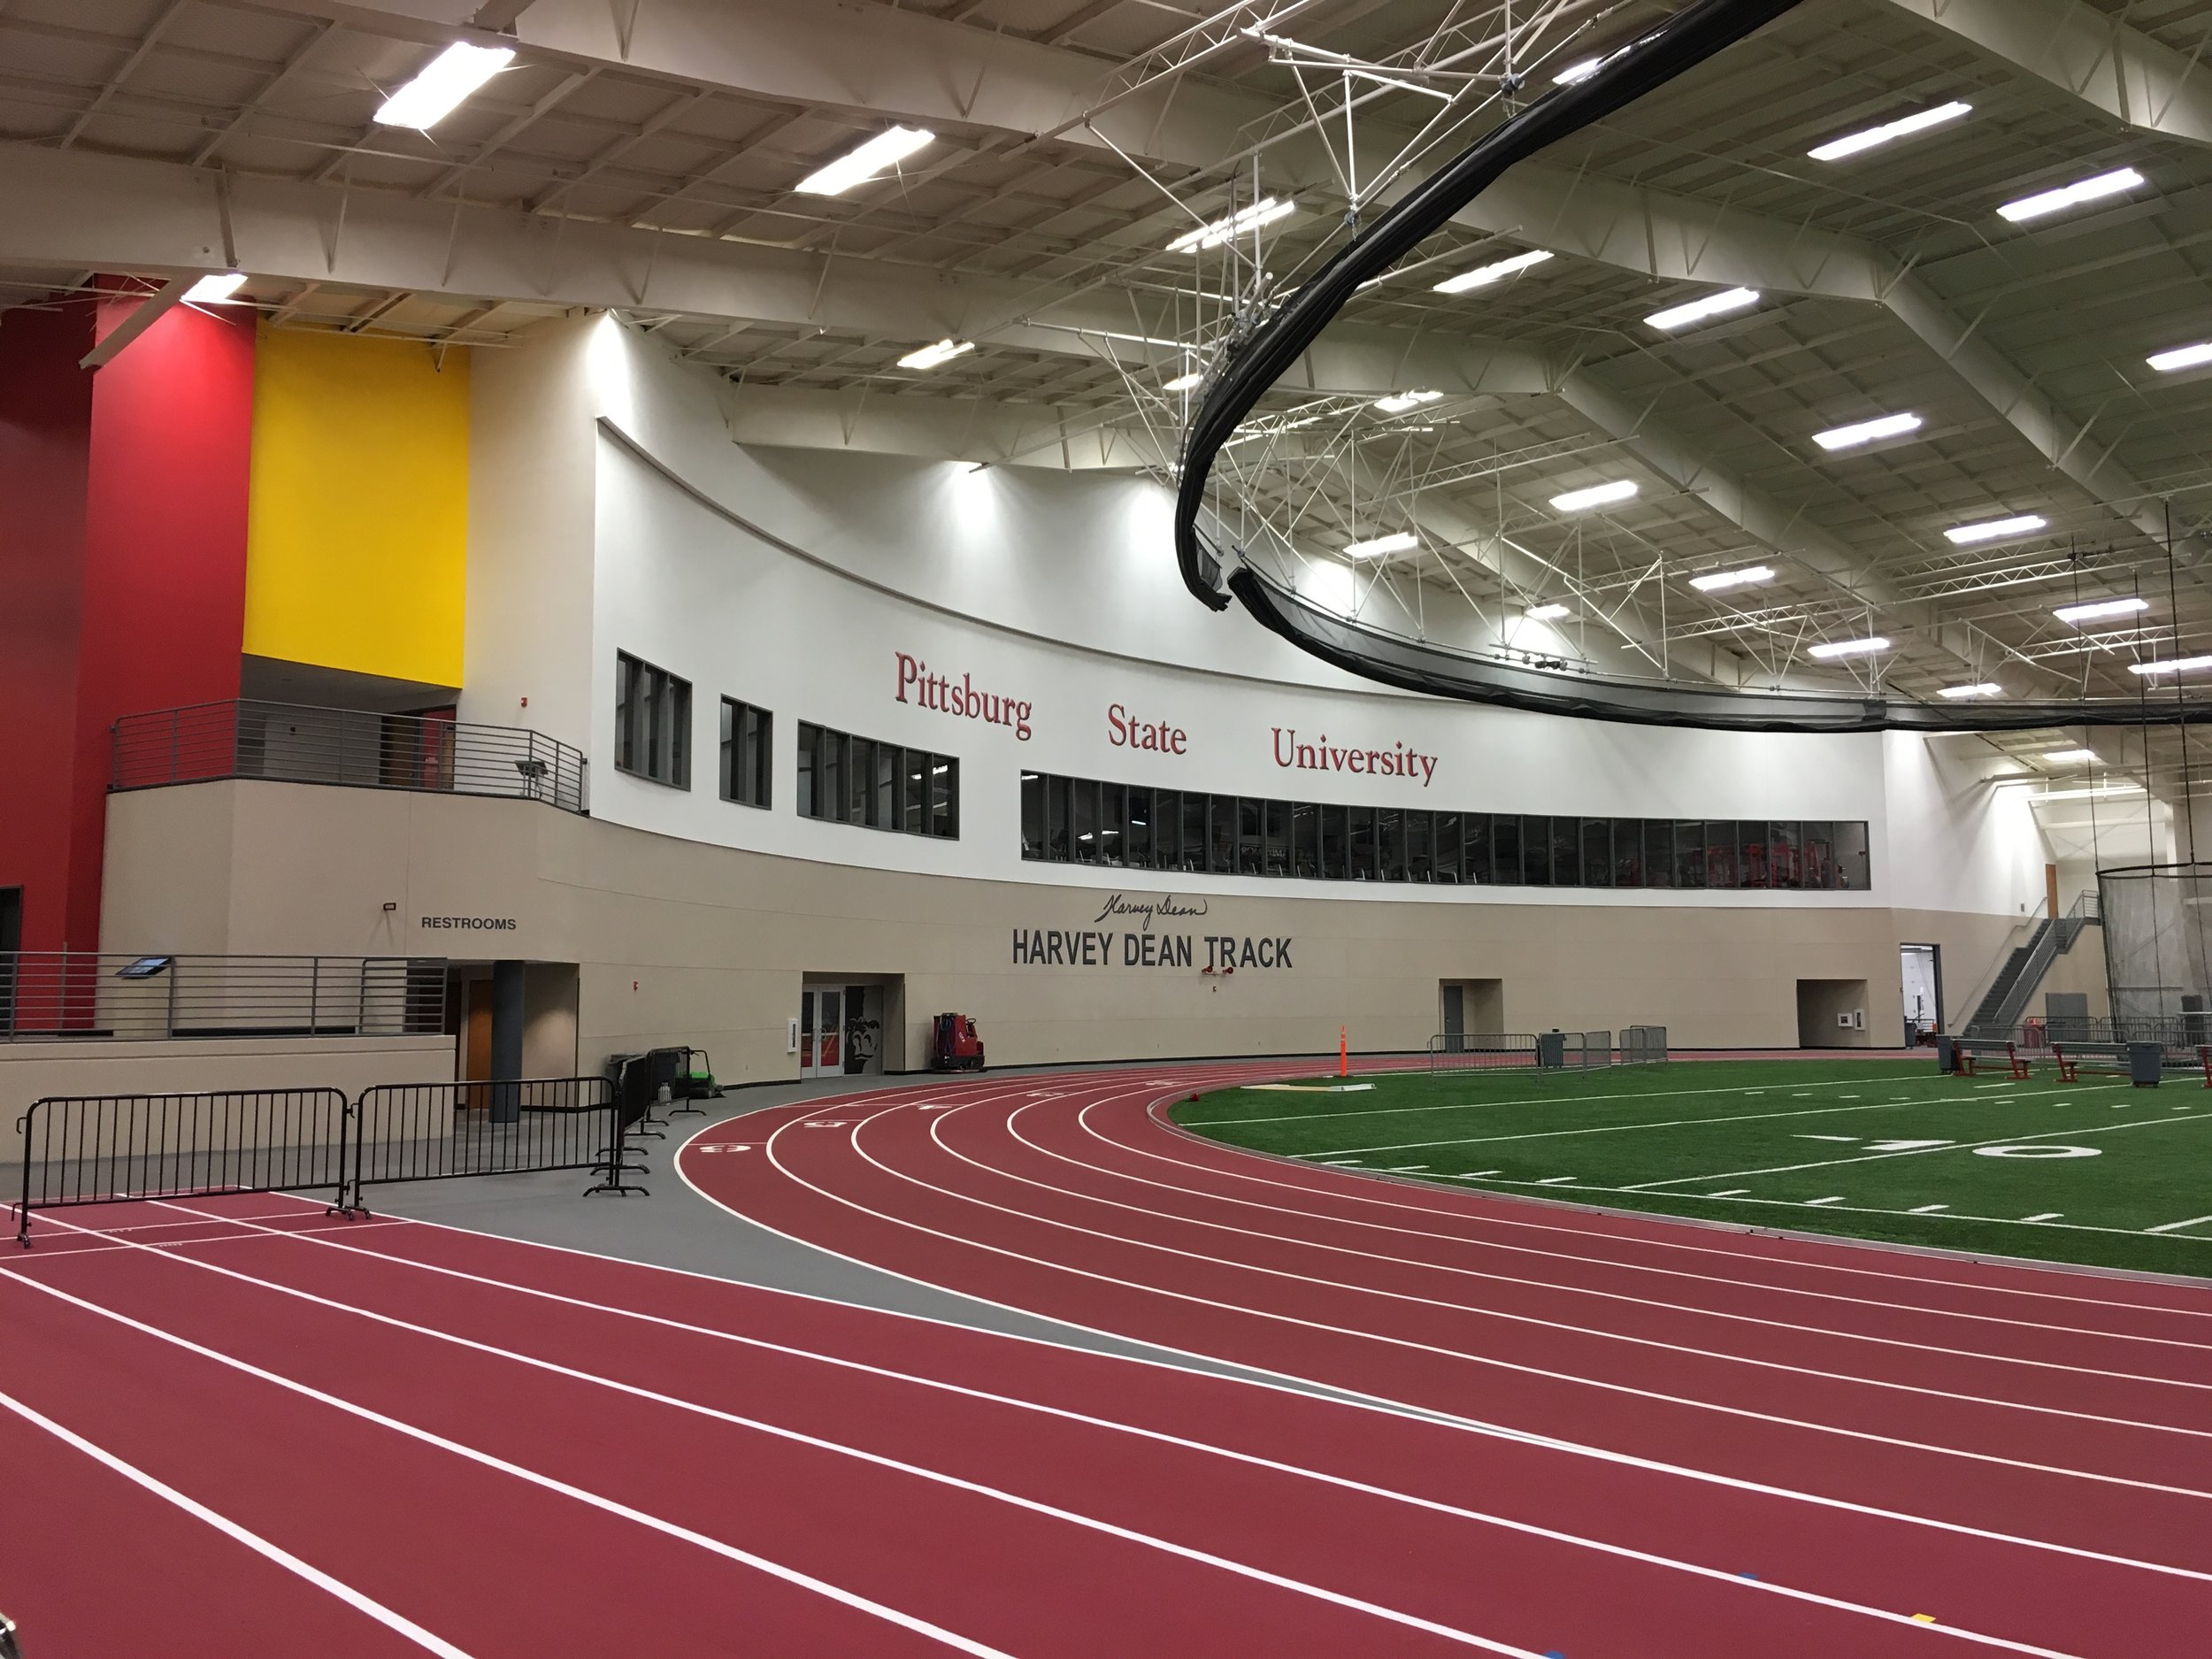 Pittsburg State University_pittsburg state event center   7.jpg